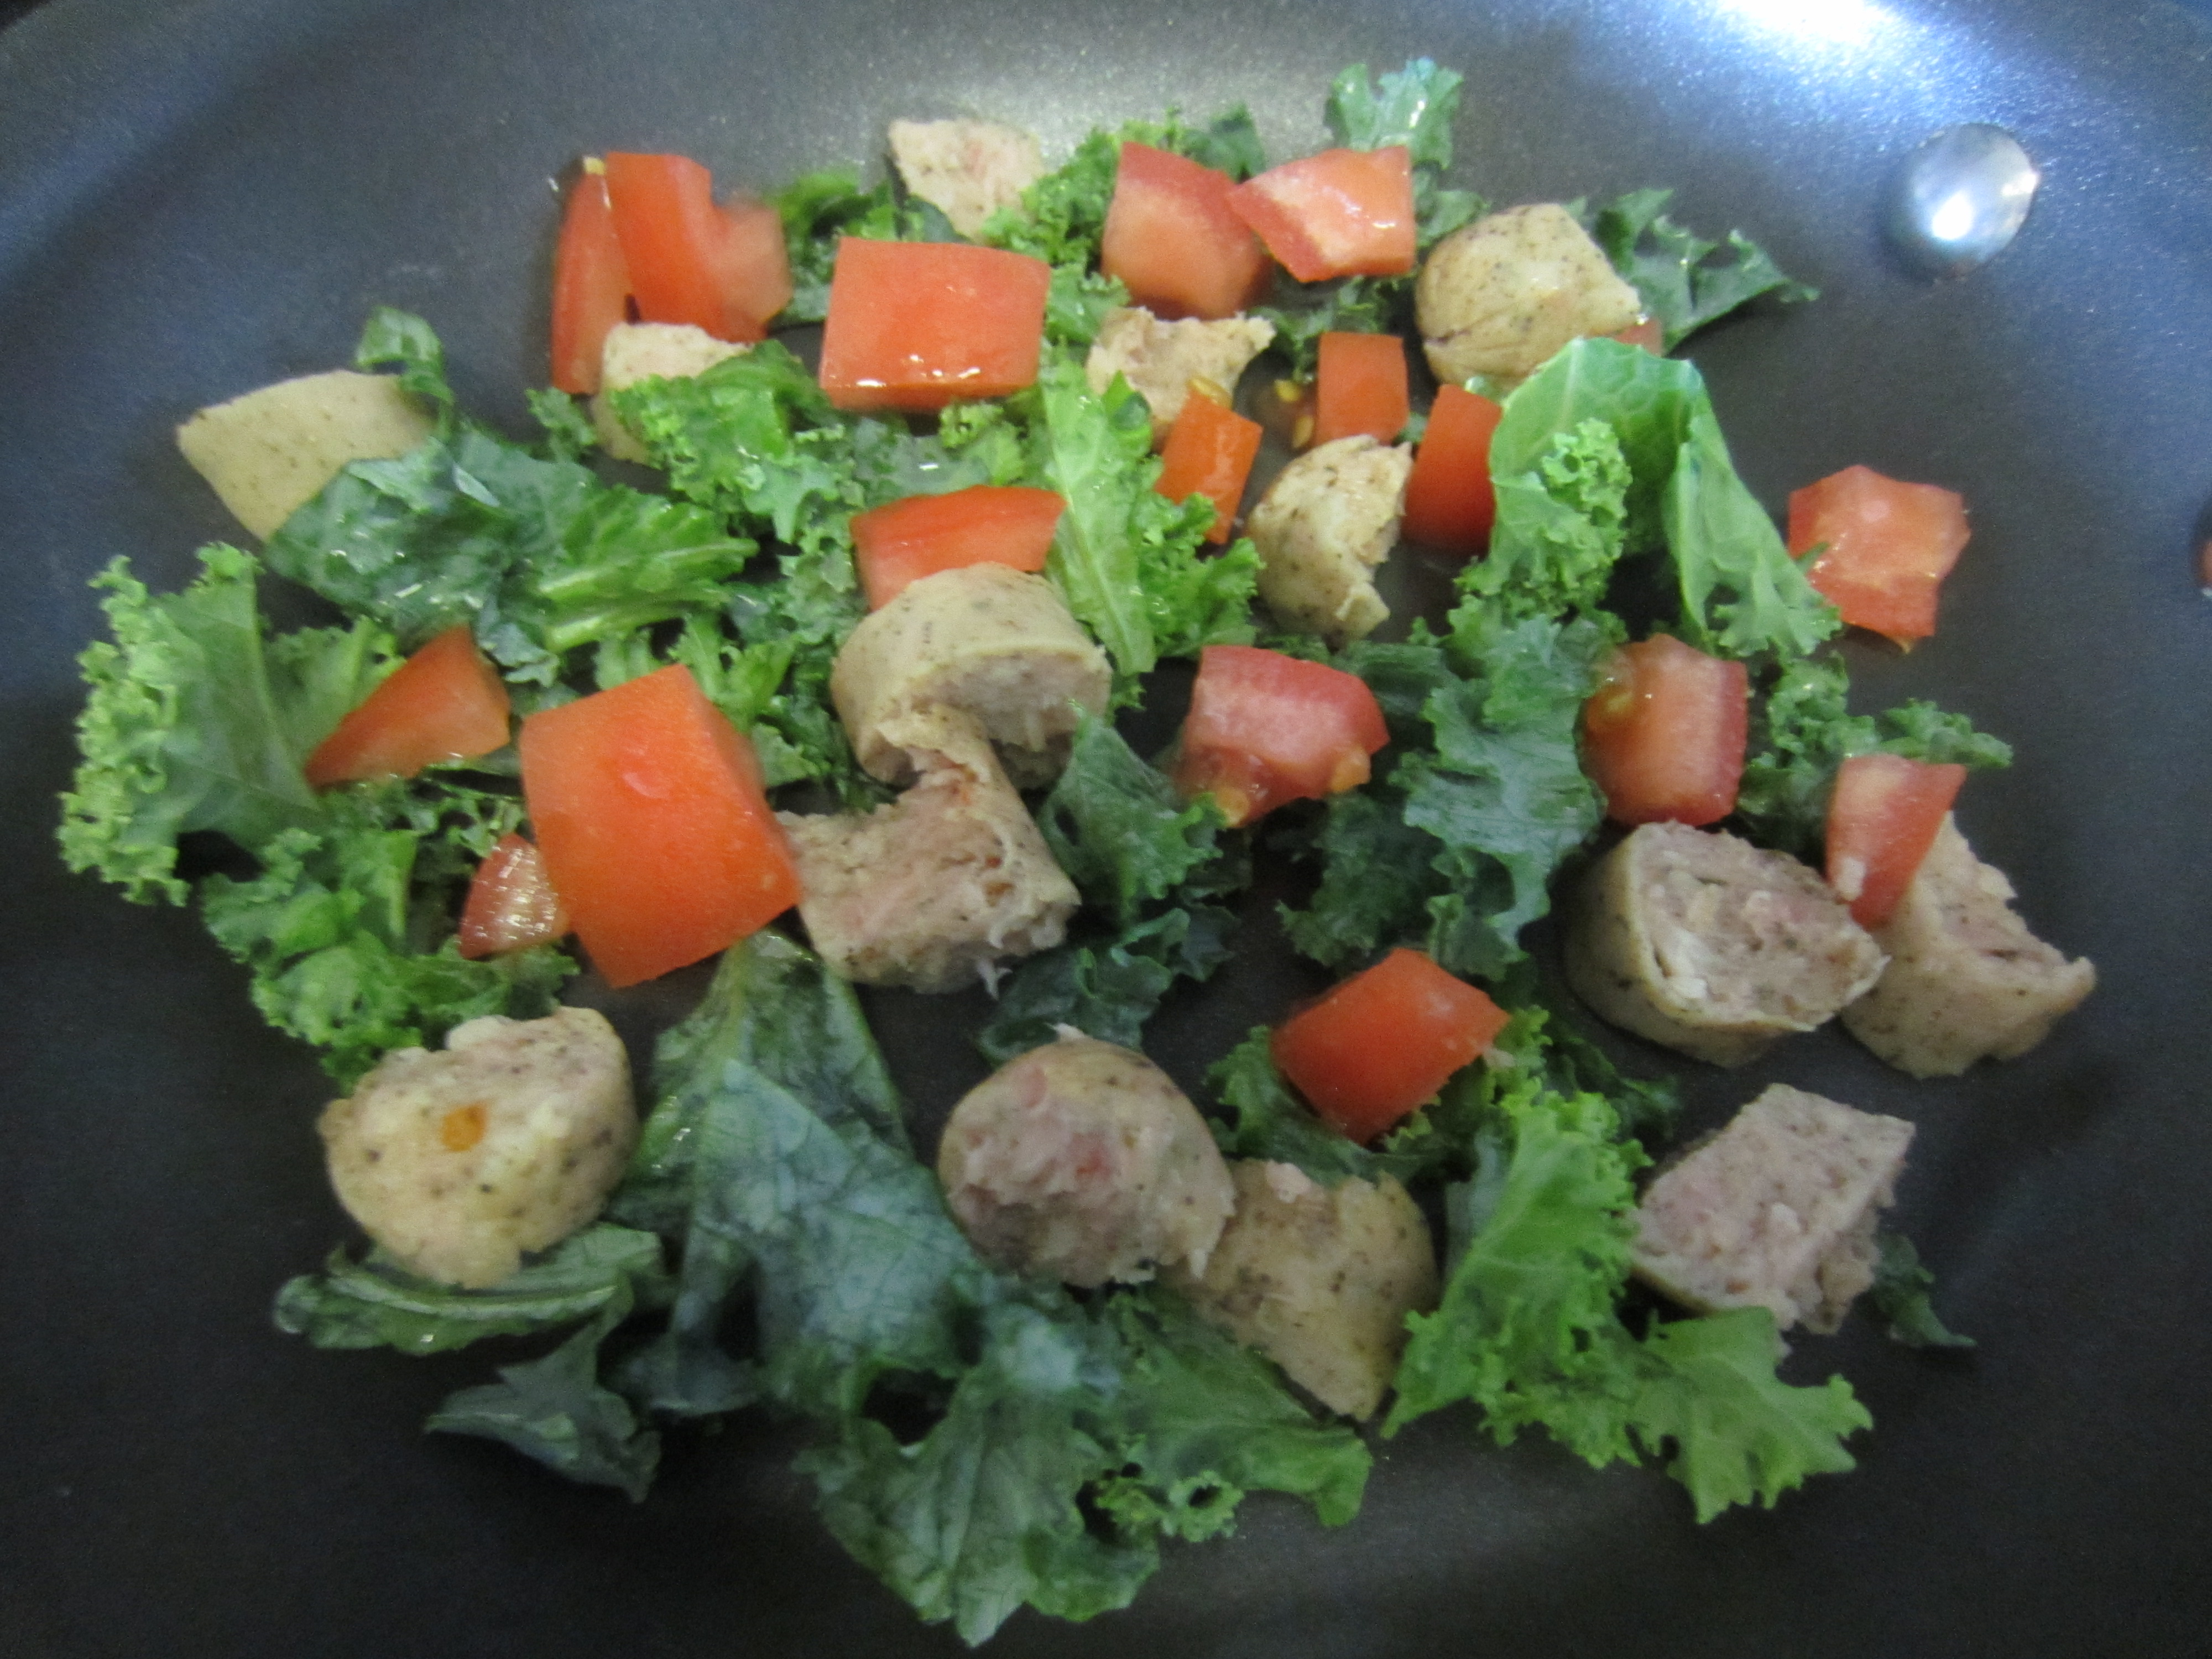 scrambling kale tomato and chicken sausage in eggs